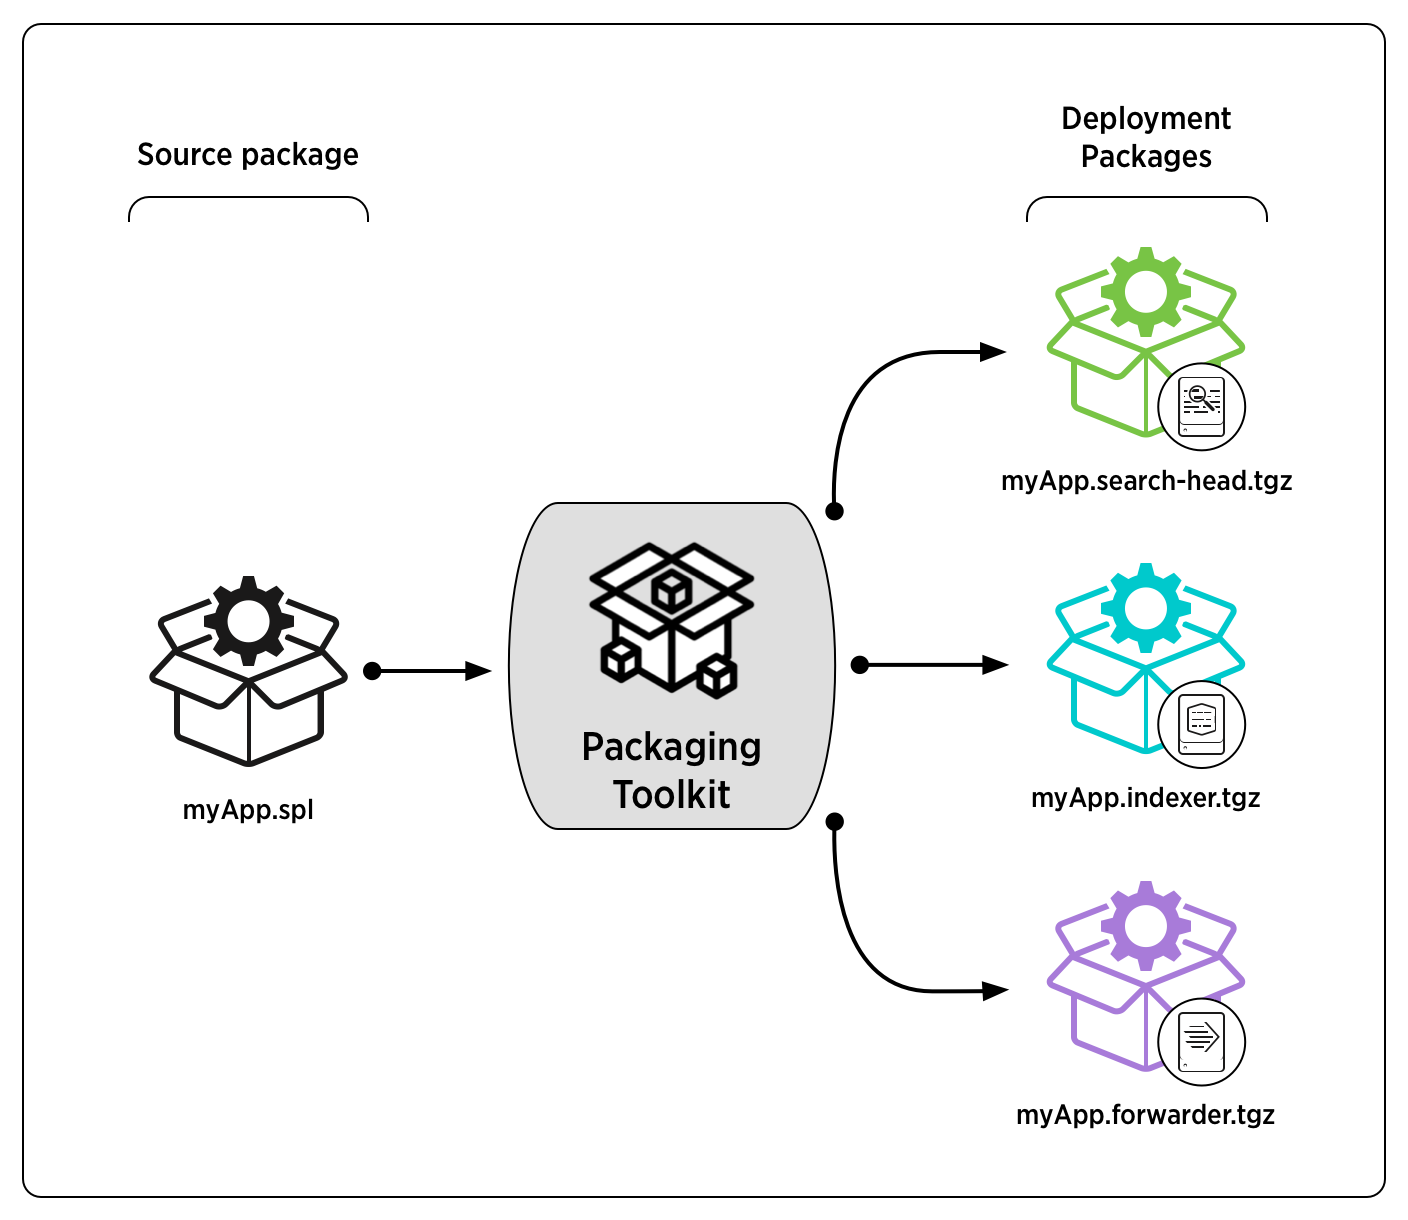 Diagram illustrating Packaging Toolkit partitioning: Source package on the left leads to the Packaging Toolkit, which splits it into three deployment packages, each intended for a different deployment node.